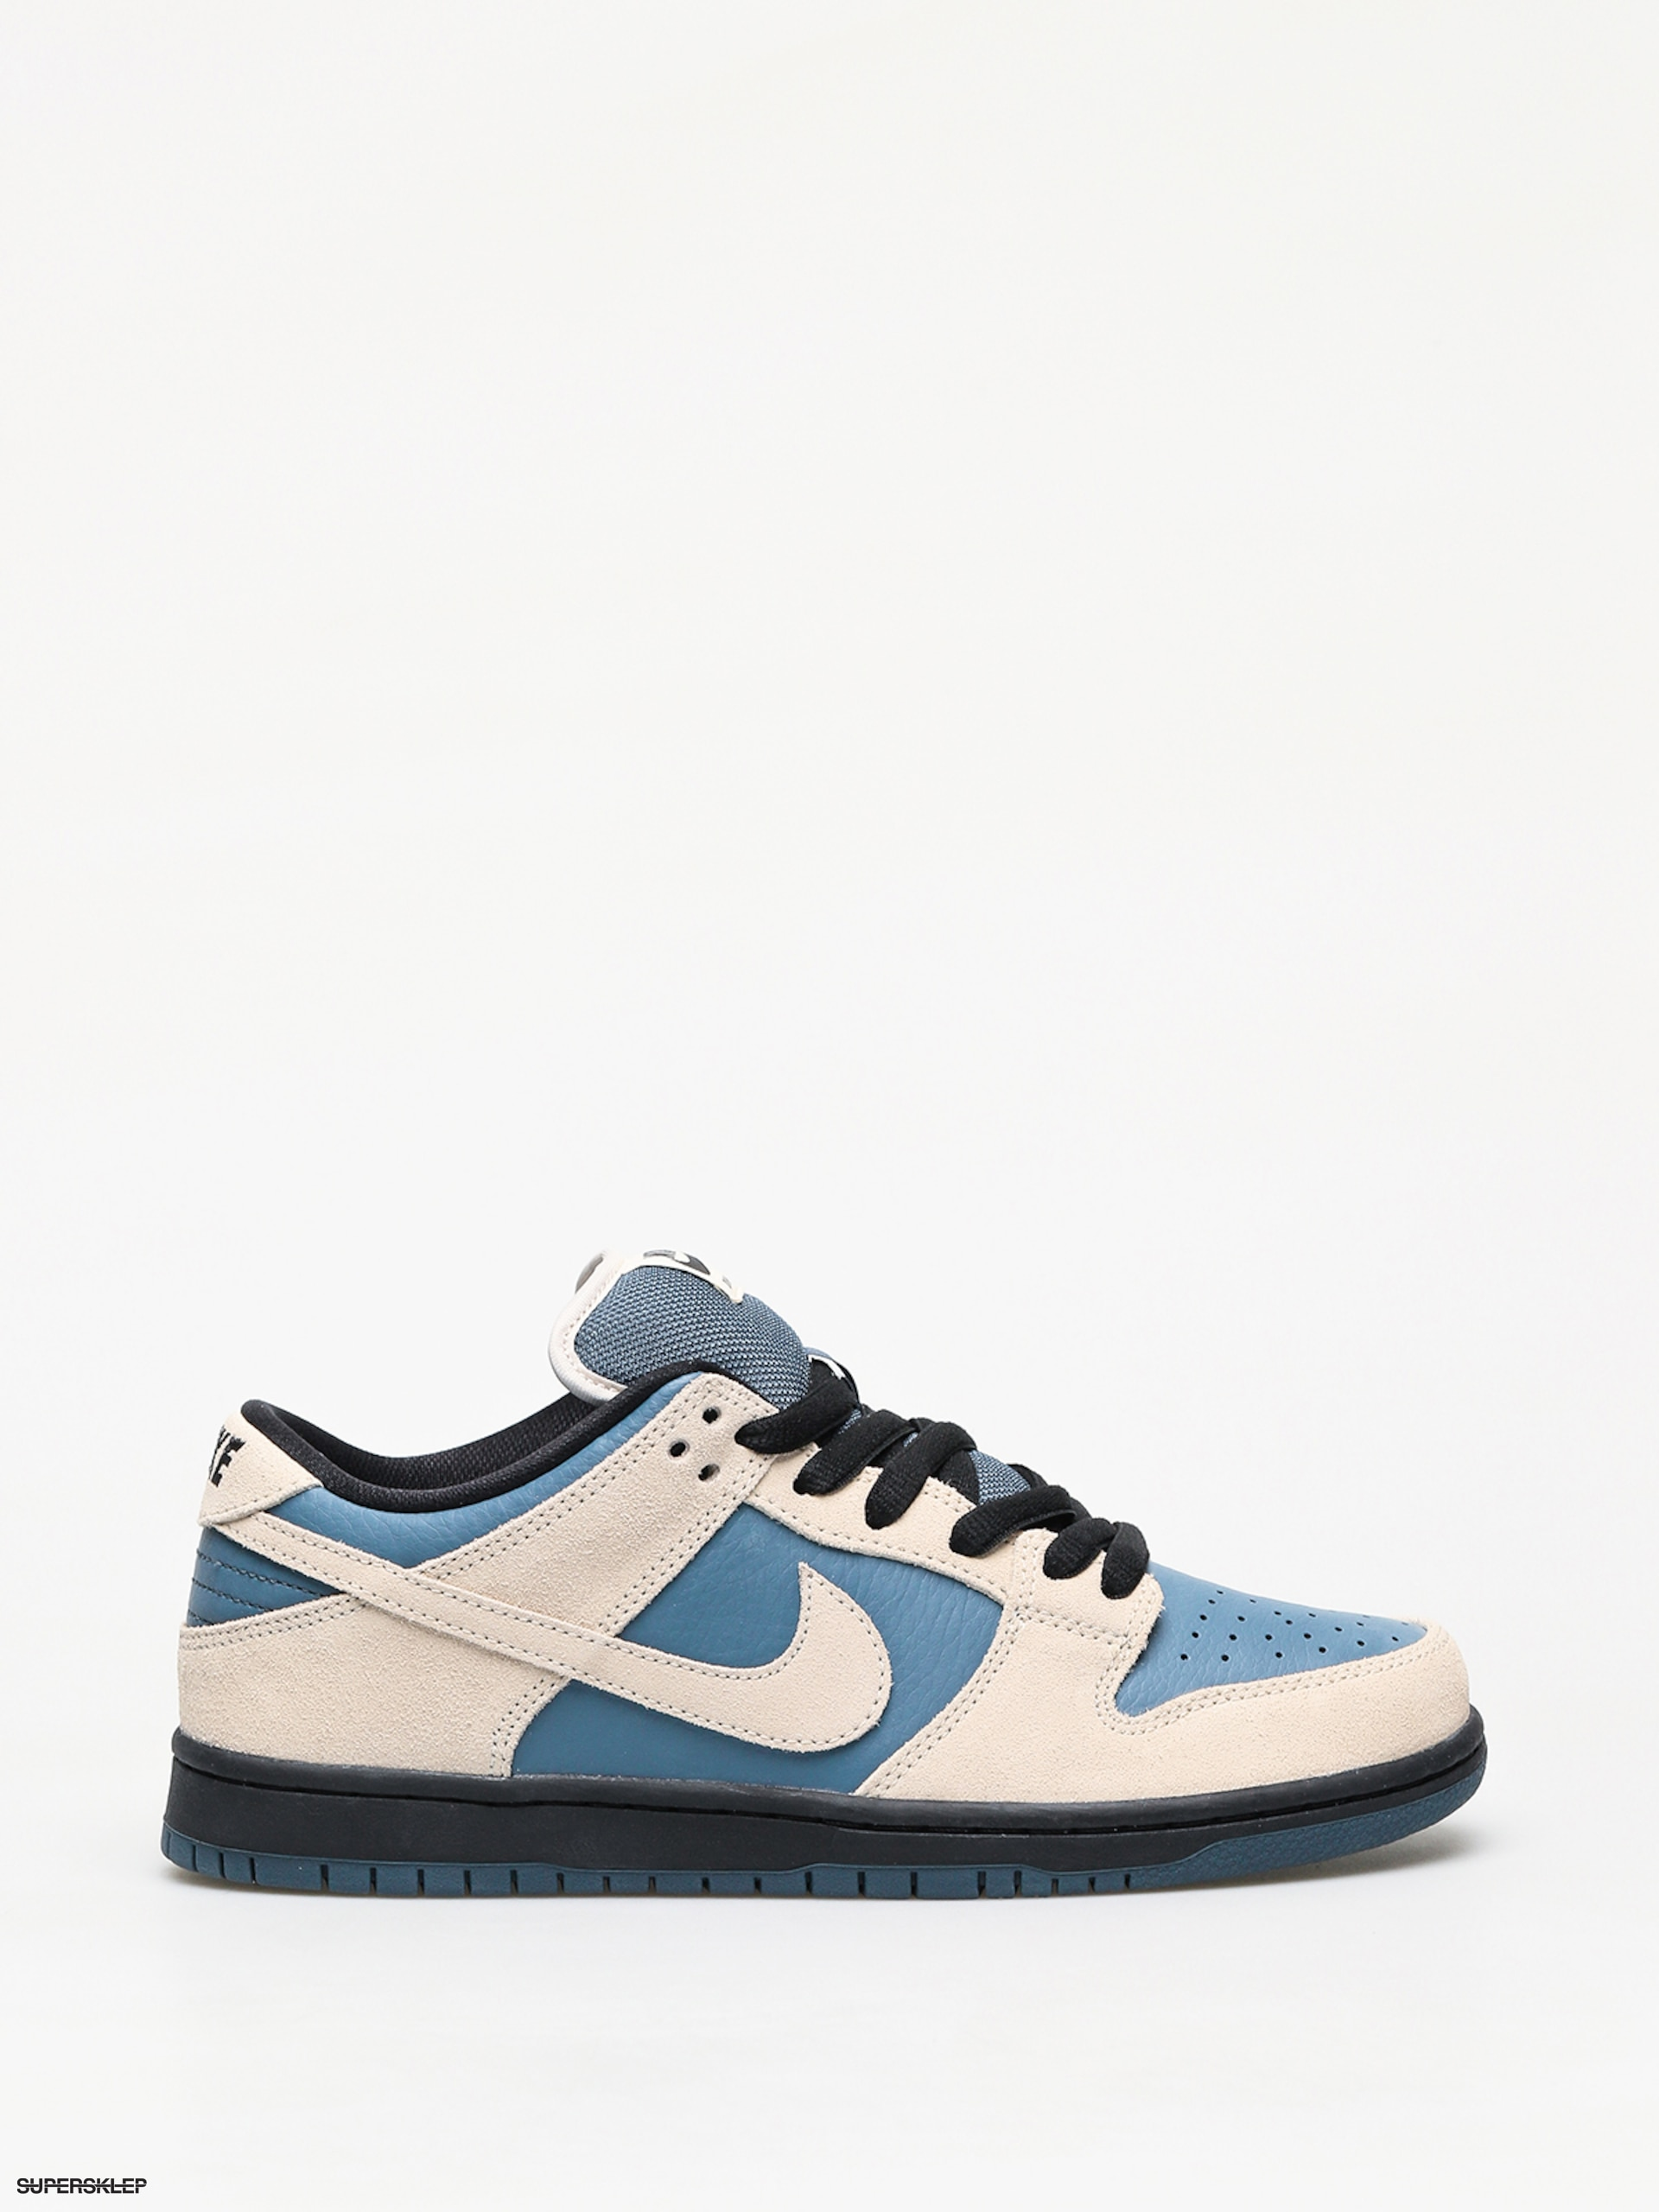 separation shoes 20d41 04ac4 Buty Nike SB Dunk Low Pro (light creamlight cream thundersto